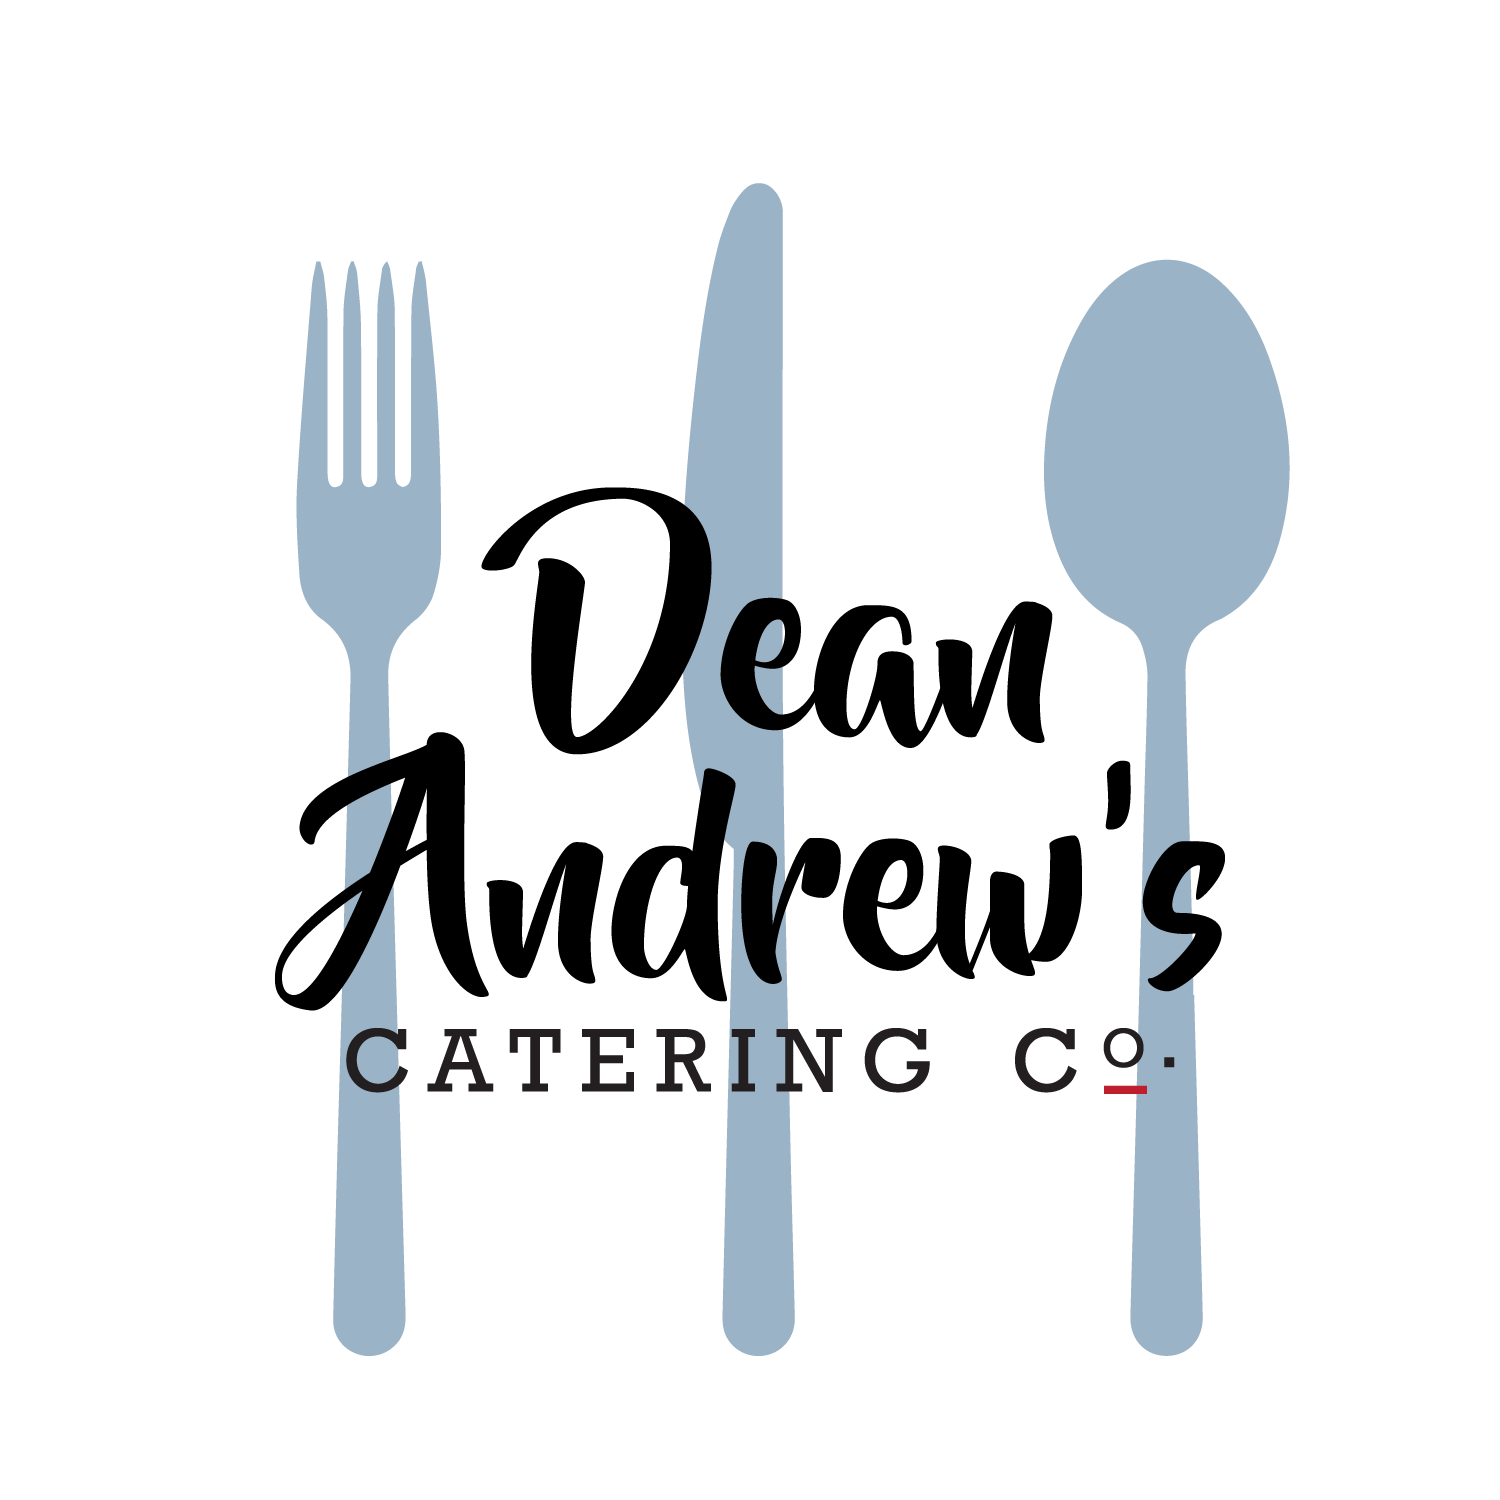 Dean Andrew's Catering Co.